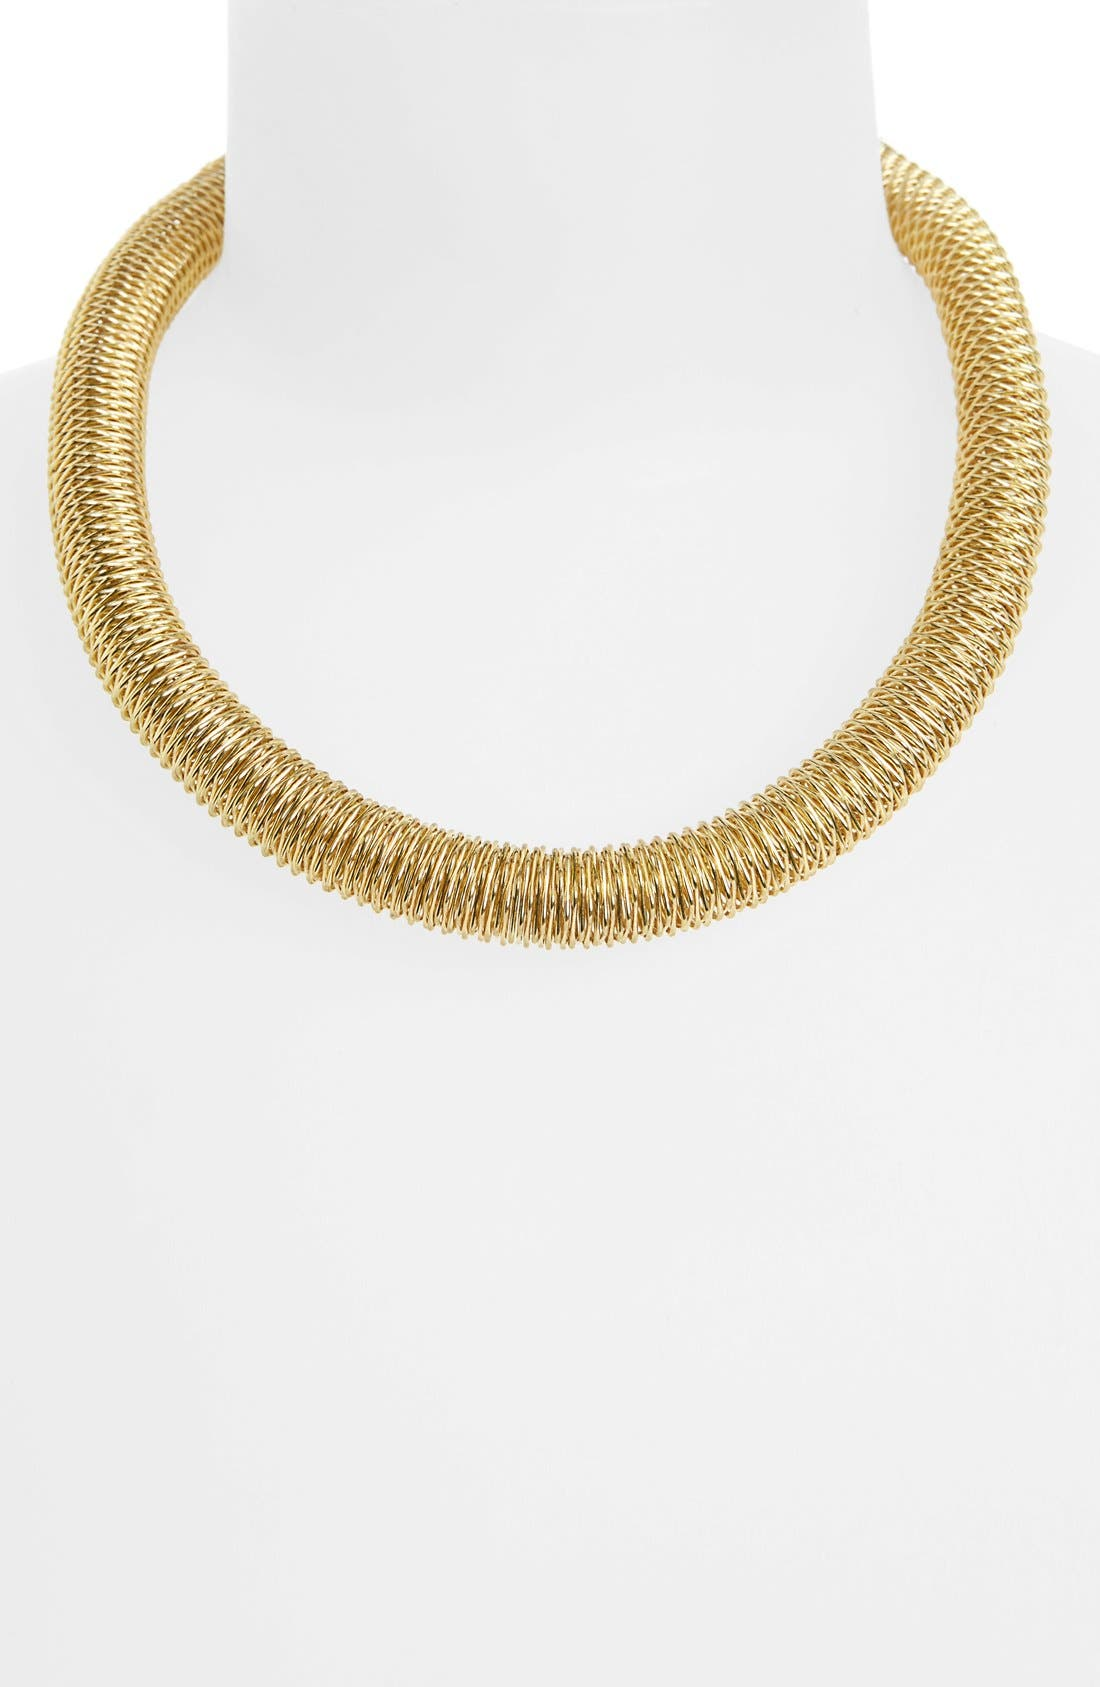 Main Image - Topshop 'Spring Stretch' Collar Necklace